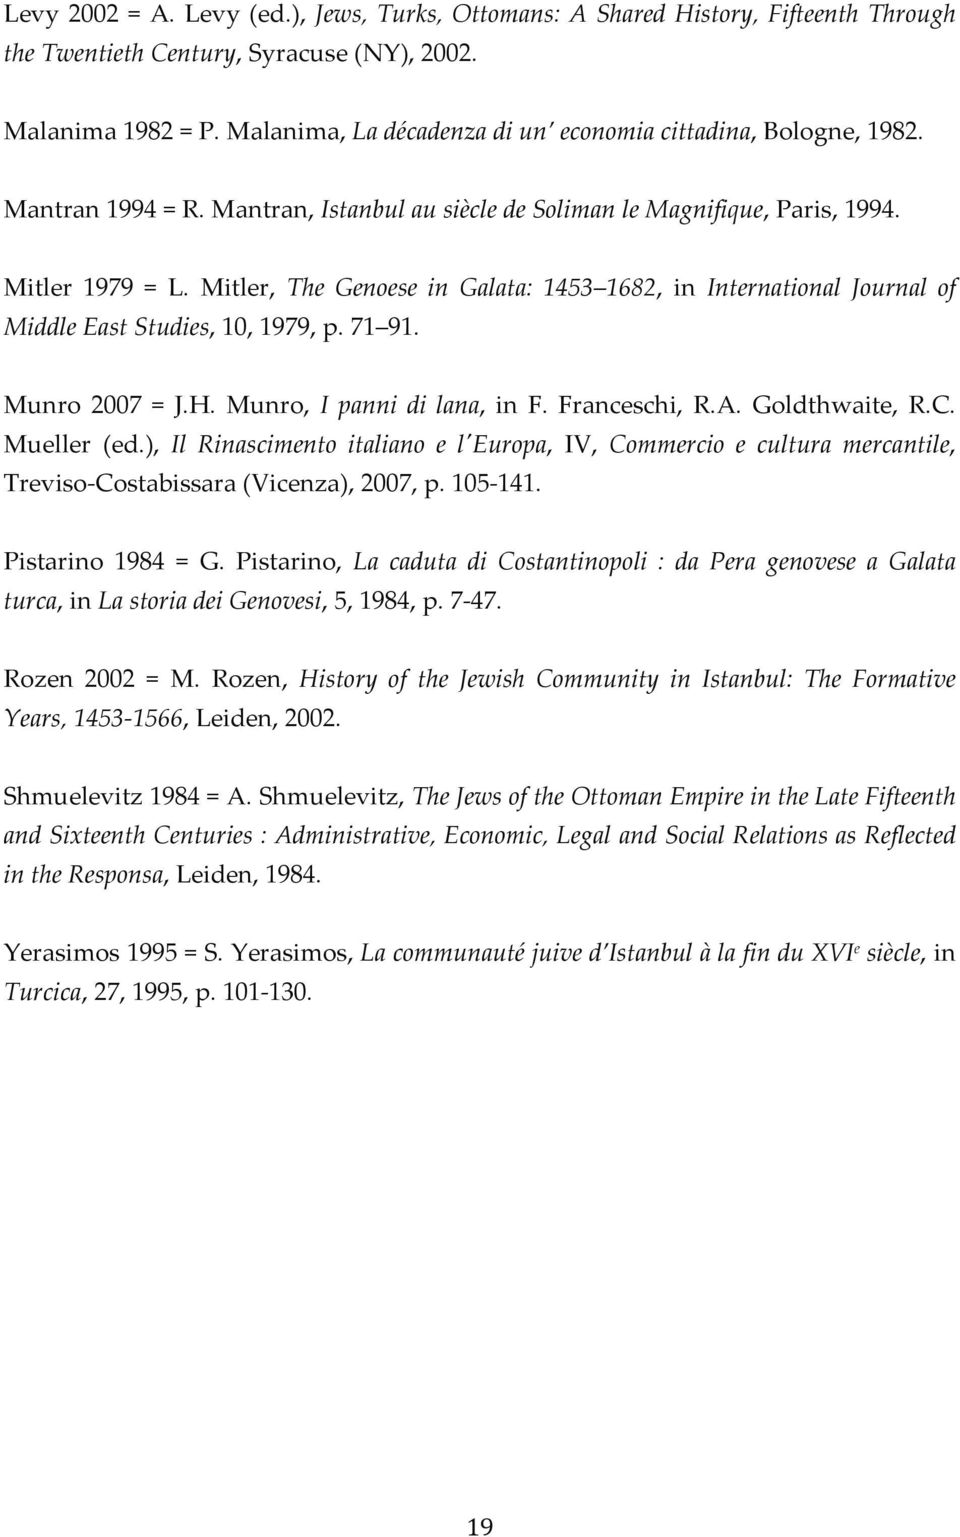 Mitler, The Genoese in Galata: 1453 1682, in International Journal of Middle East Studies, 10, 1979, p. 71 91. Munro 2007 = J.H. Munro, I panni di lana, in F. Franceschi, R.A. Goldthwaite, R.C.